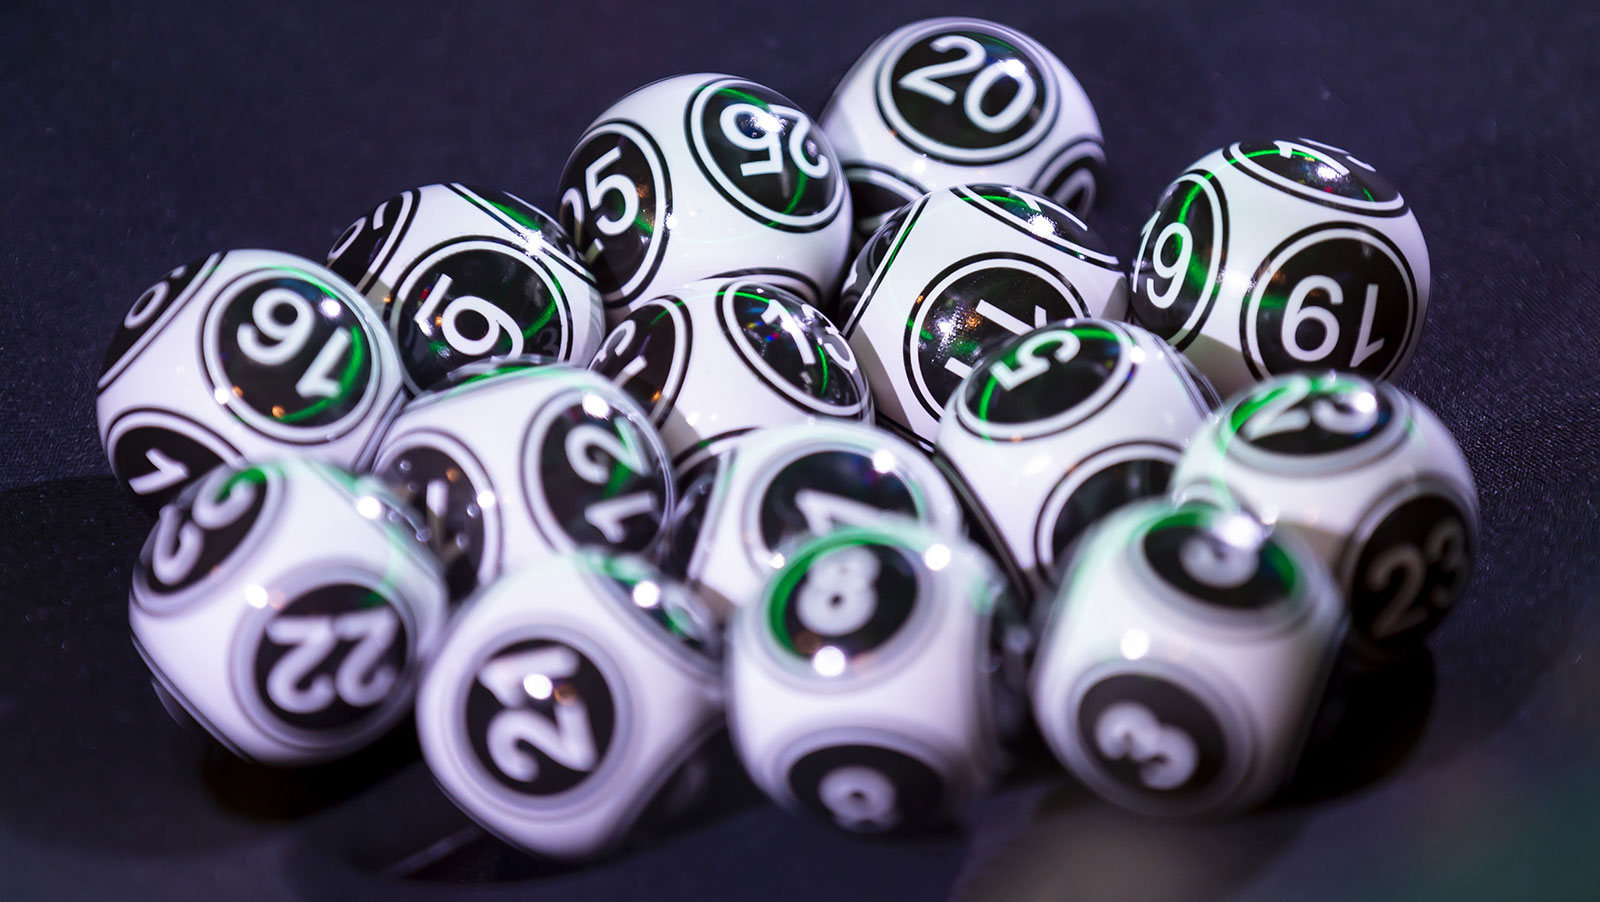 Longtime Loto-Quebec player sues for not understanding long odds